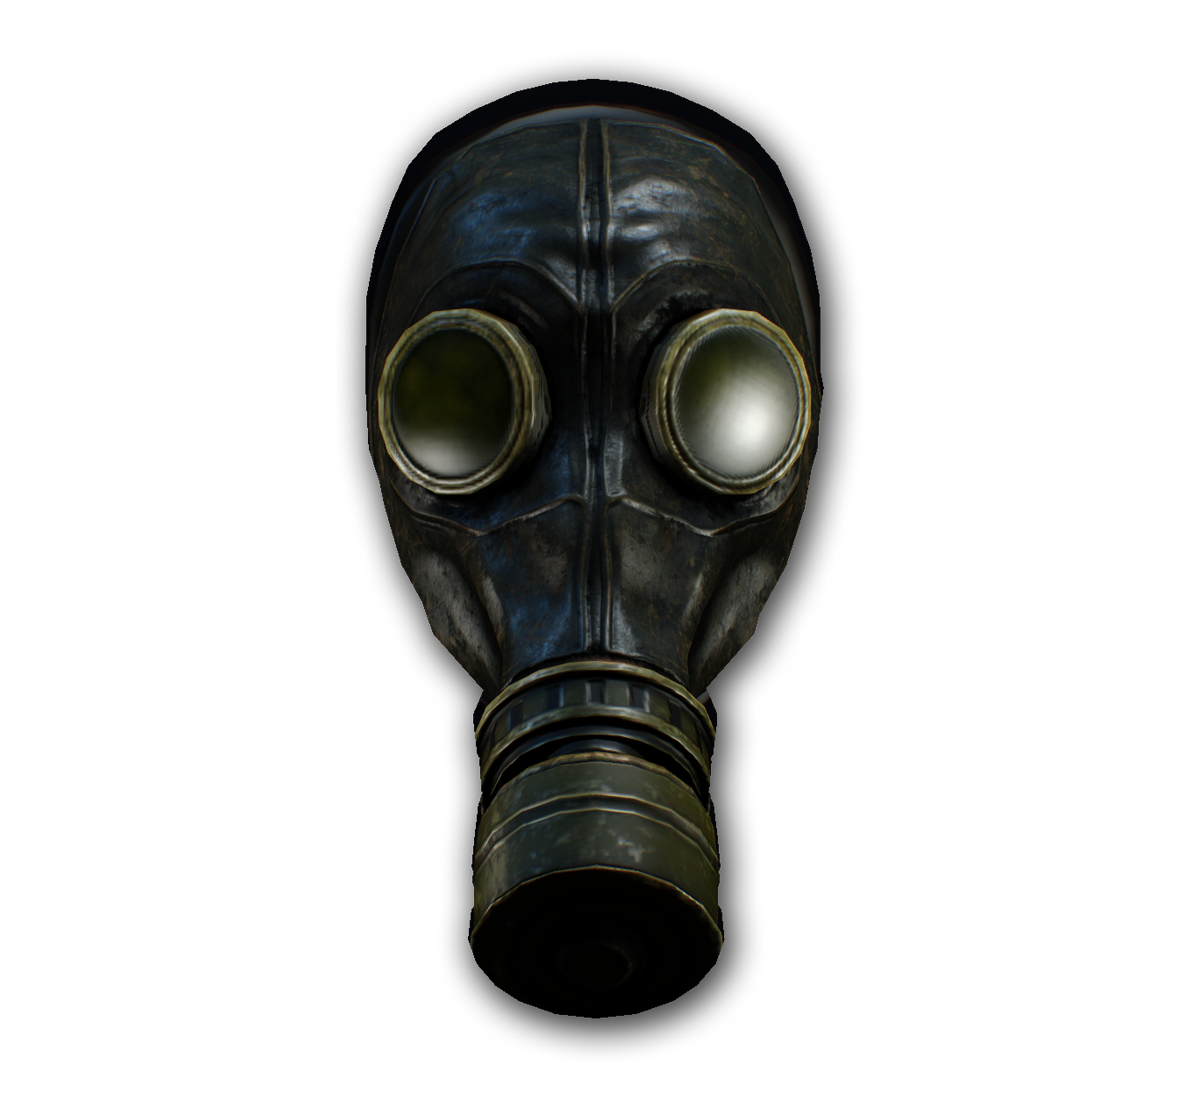 black gas mask image transparent background #39169